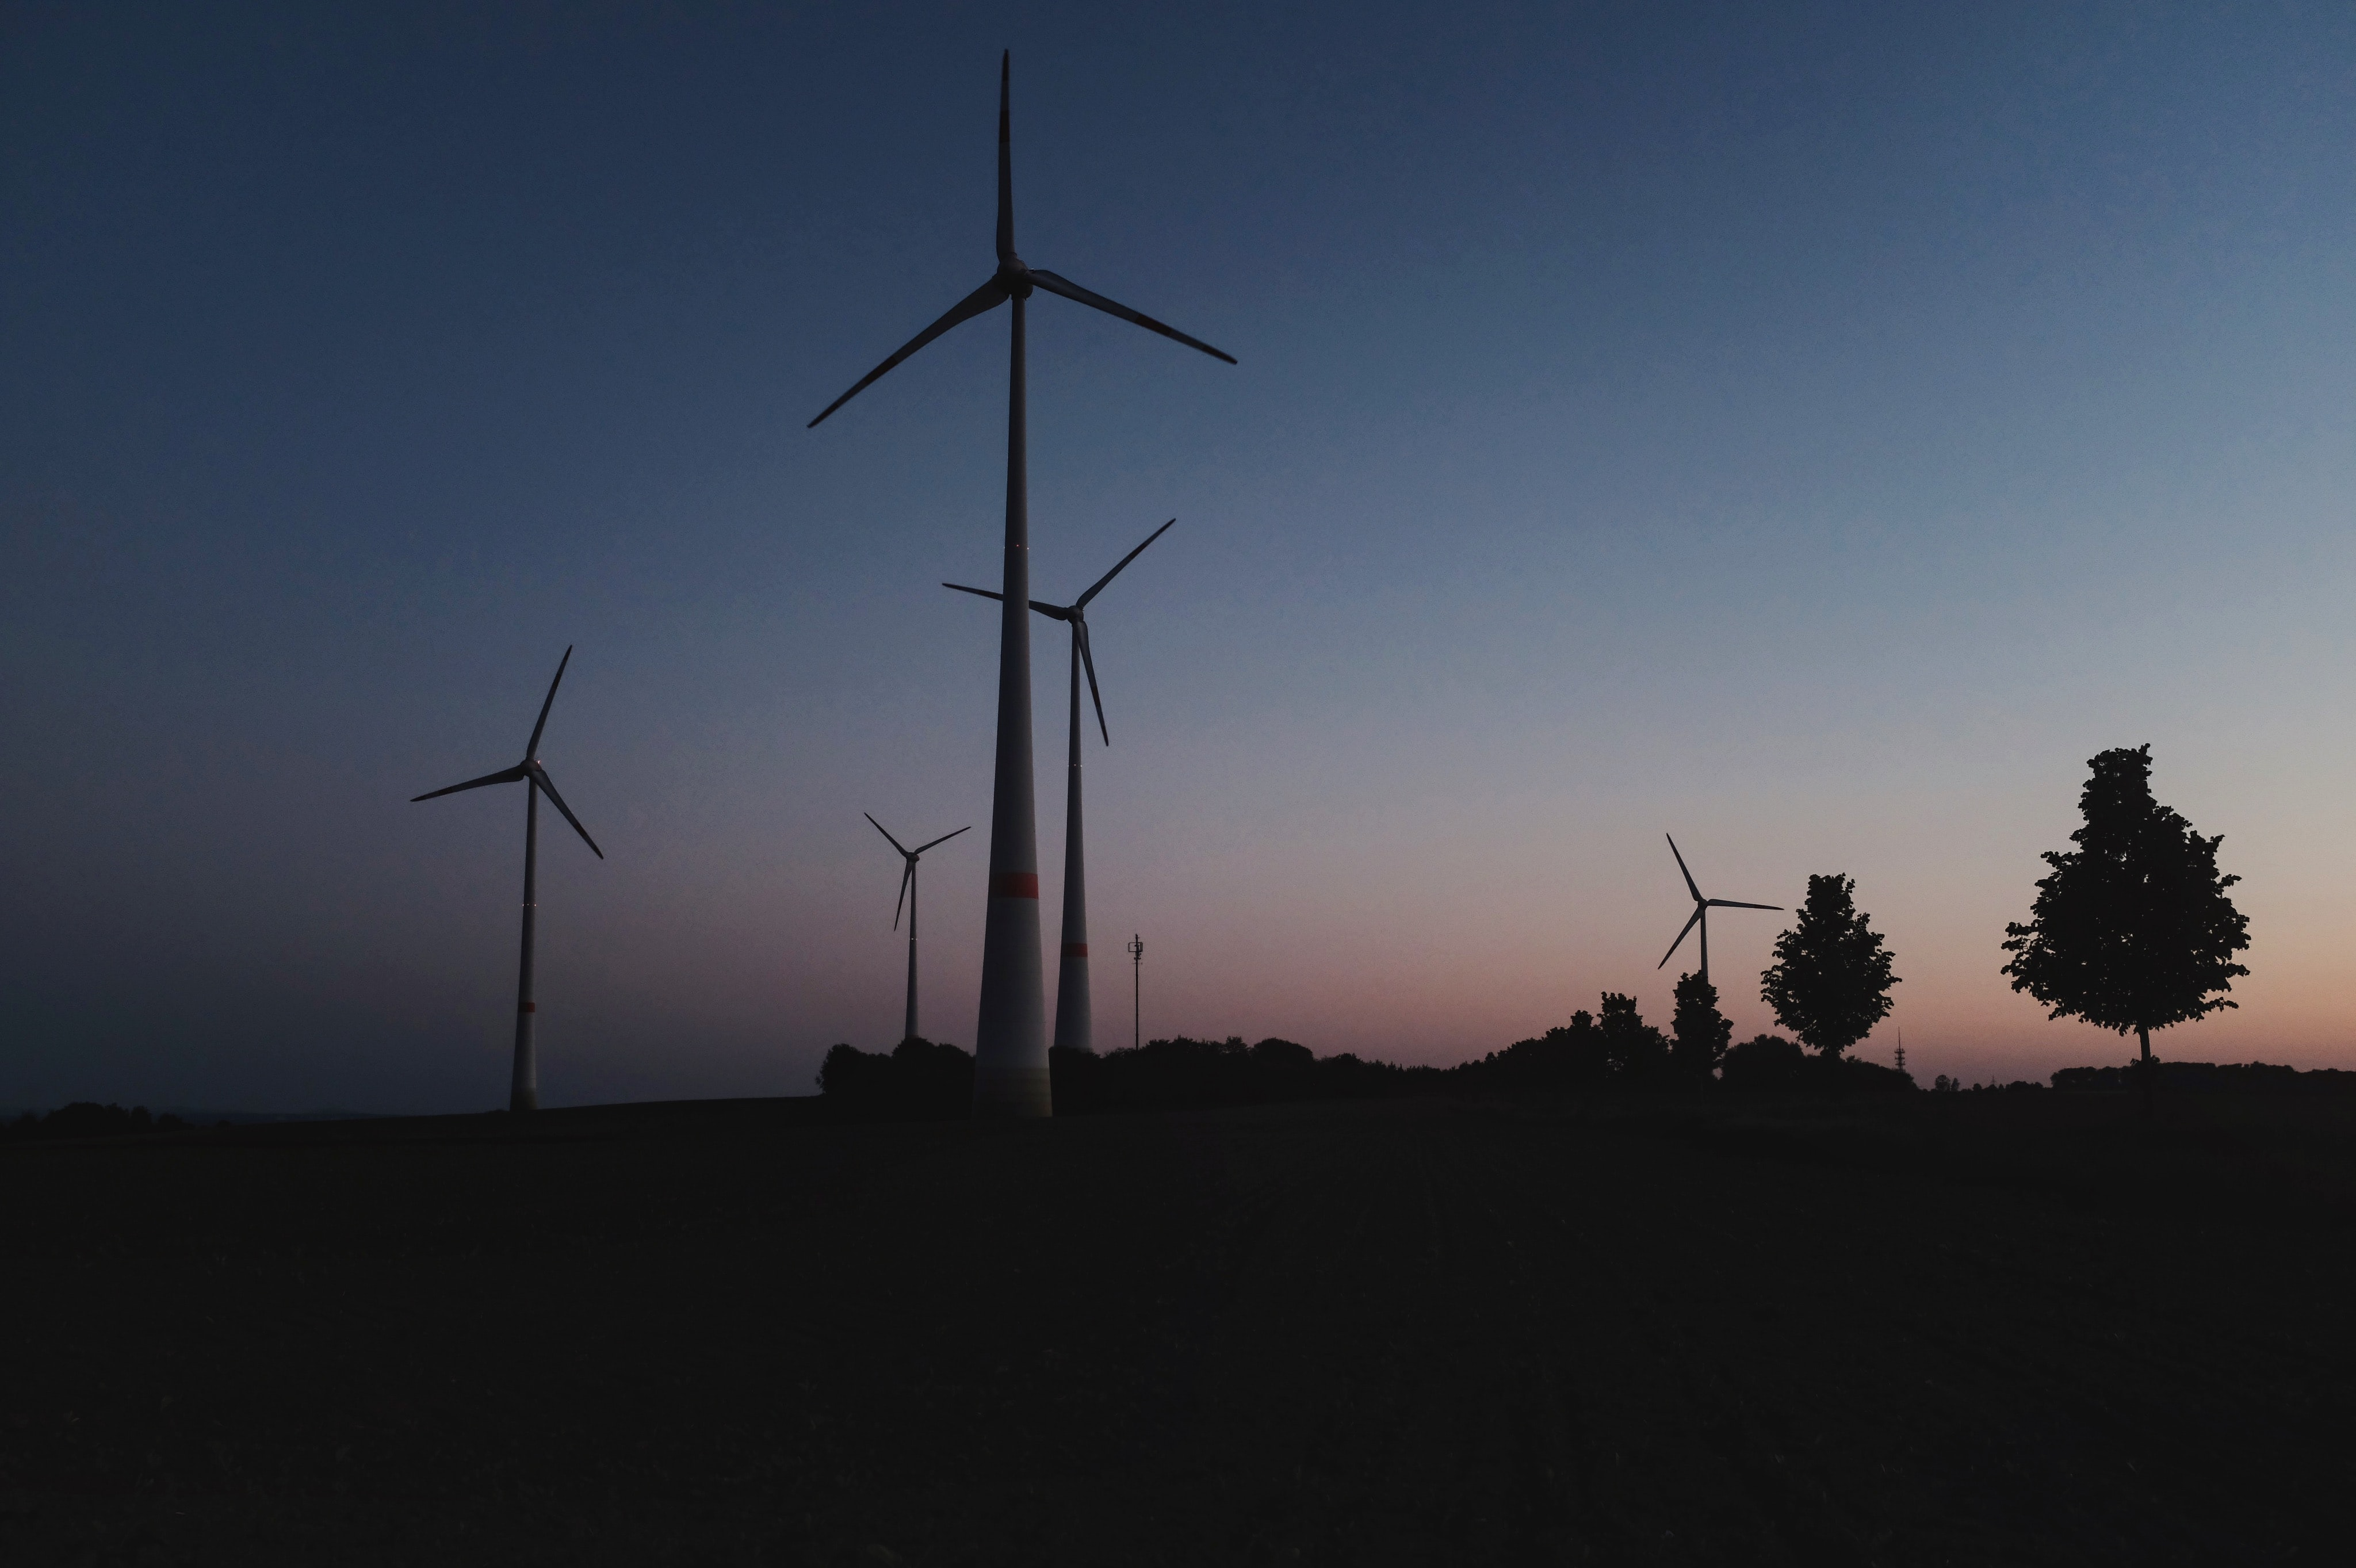 wind turbines silhouette under blue and white sky